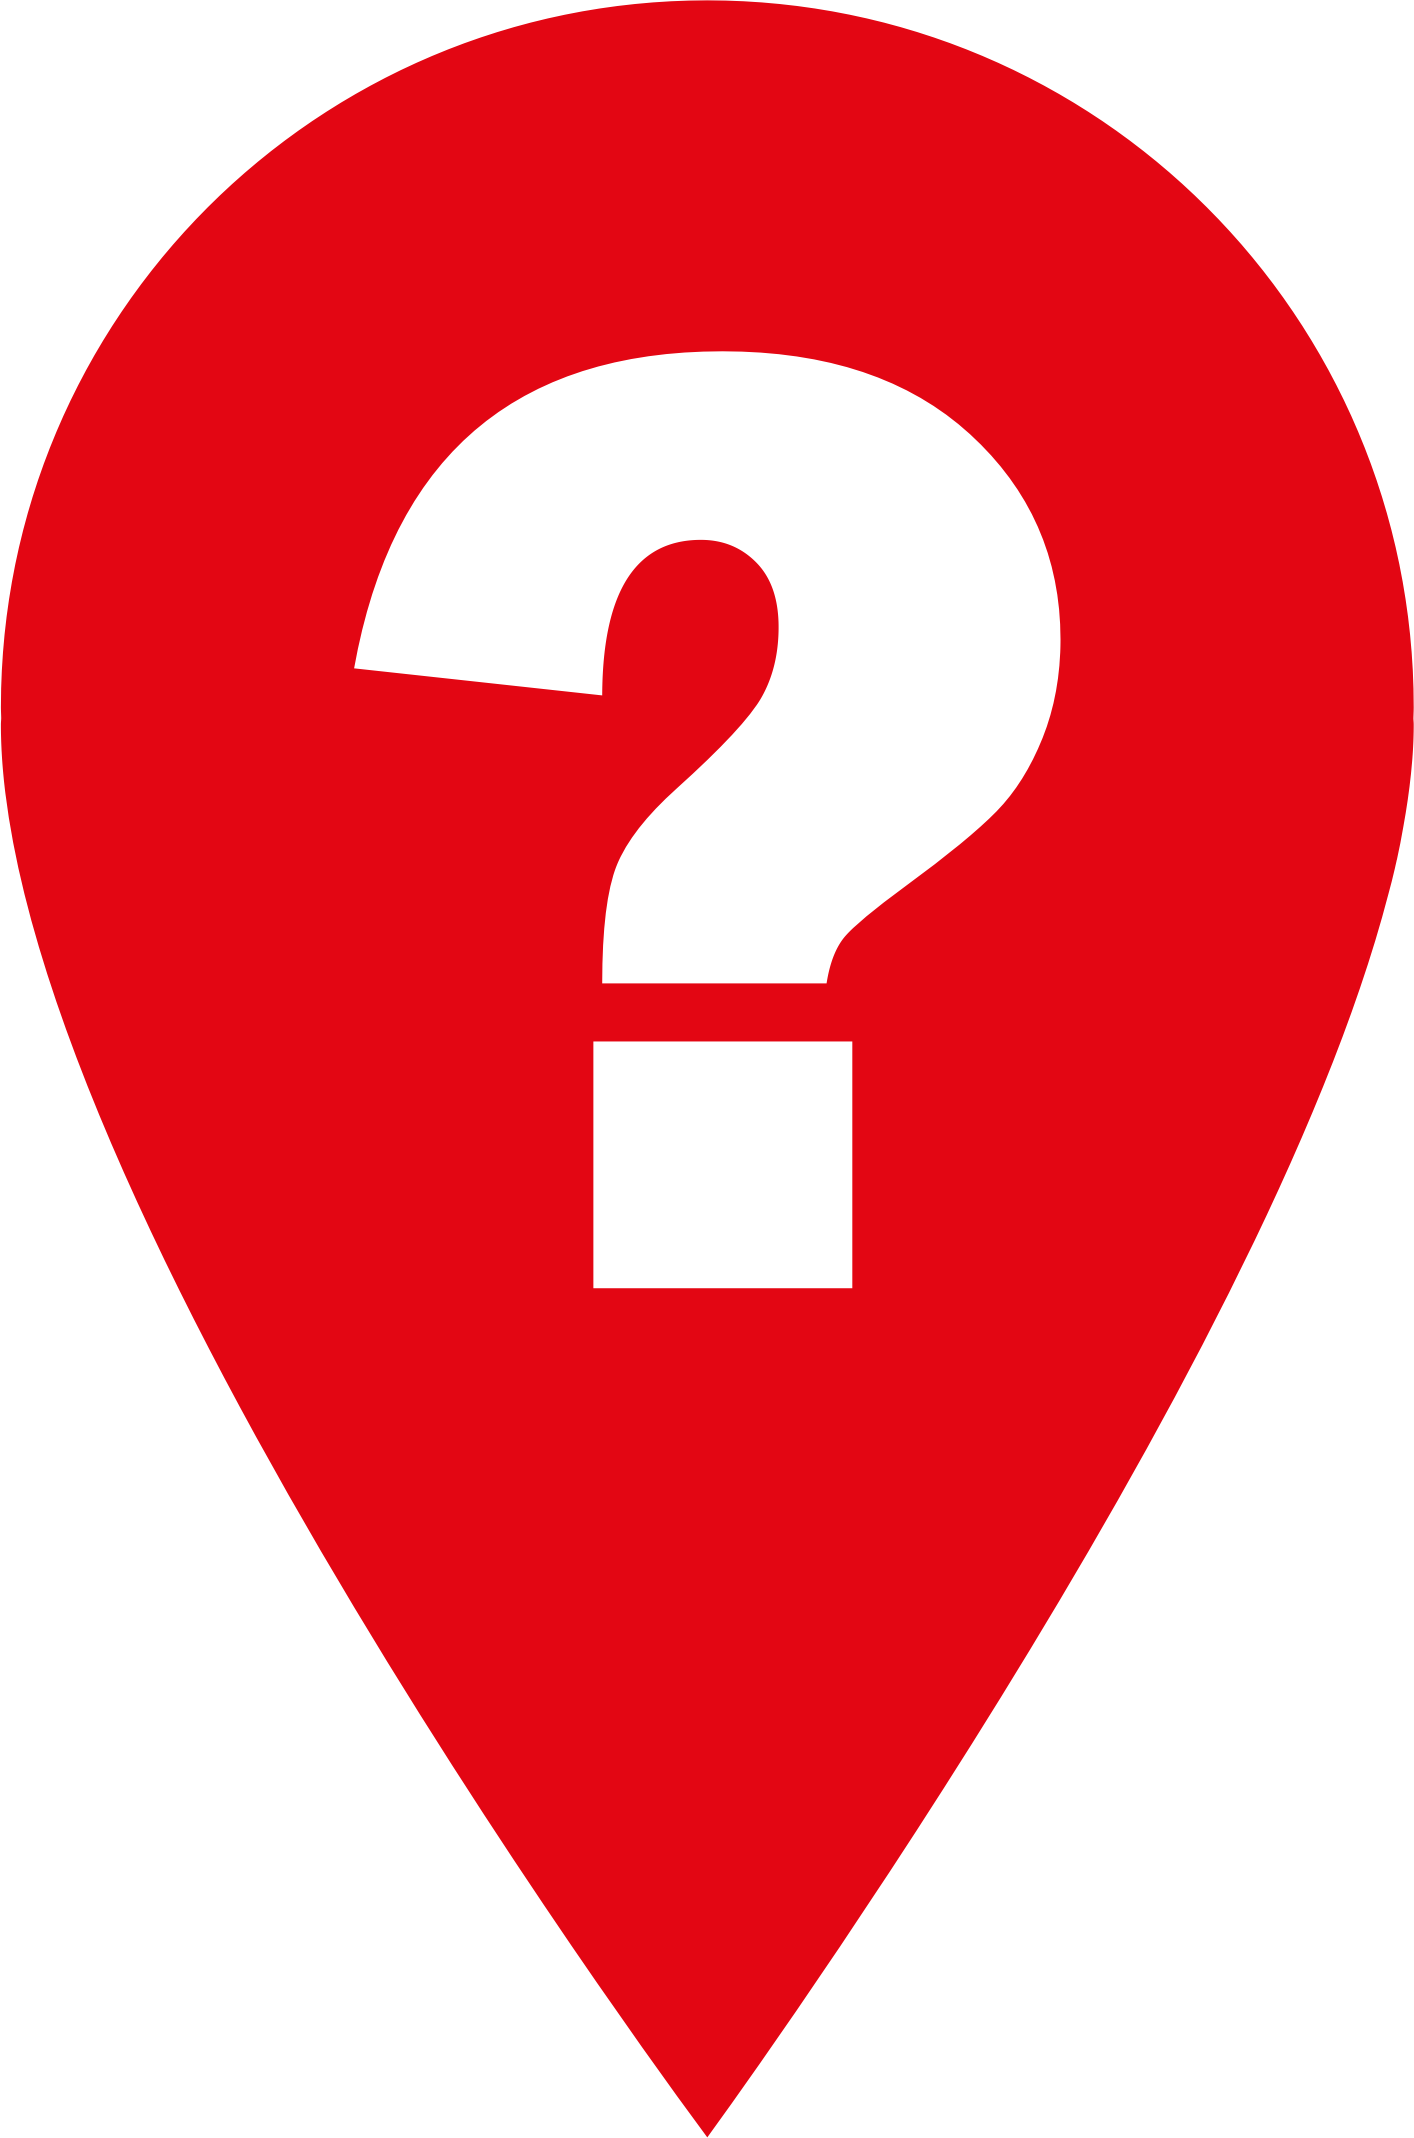 Location clipart location pointer. Red help icon icons